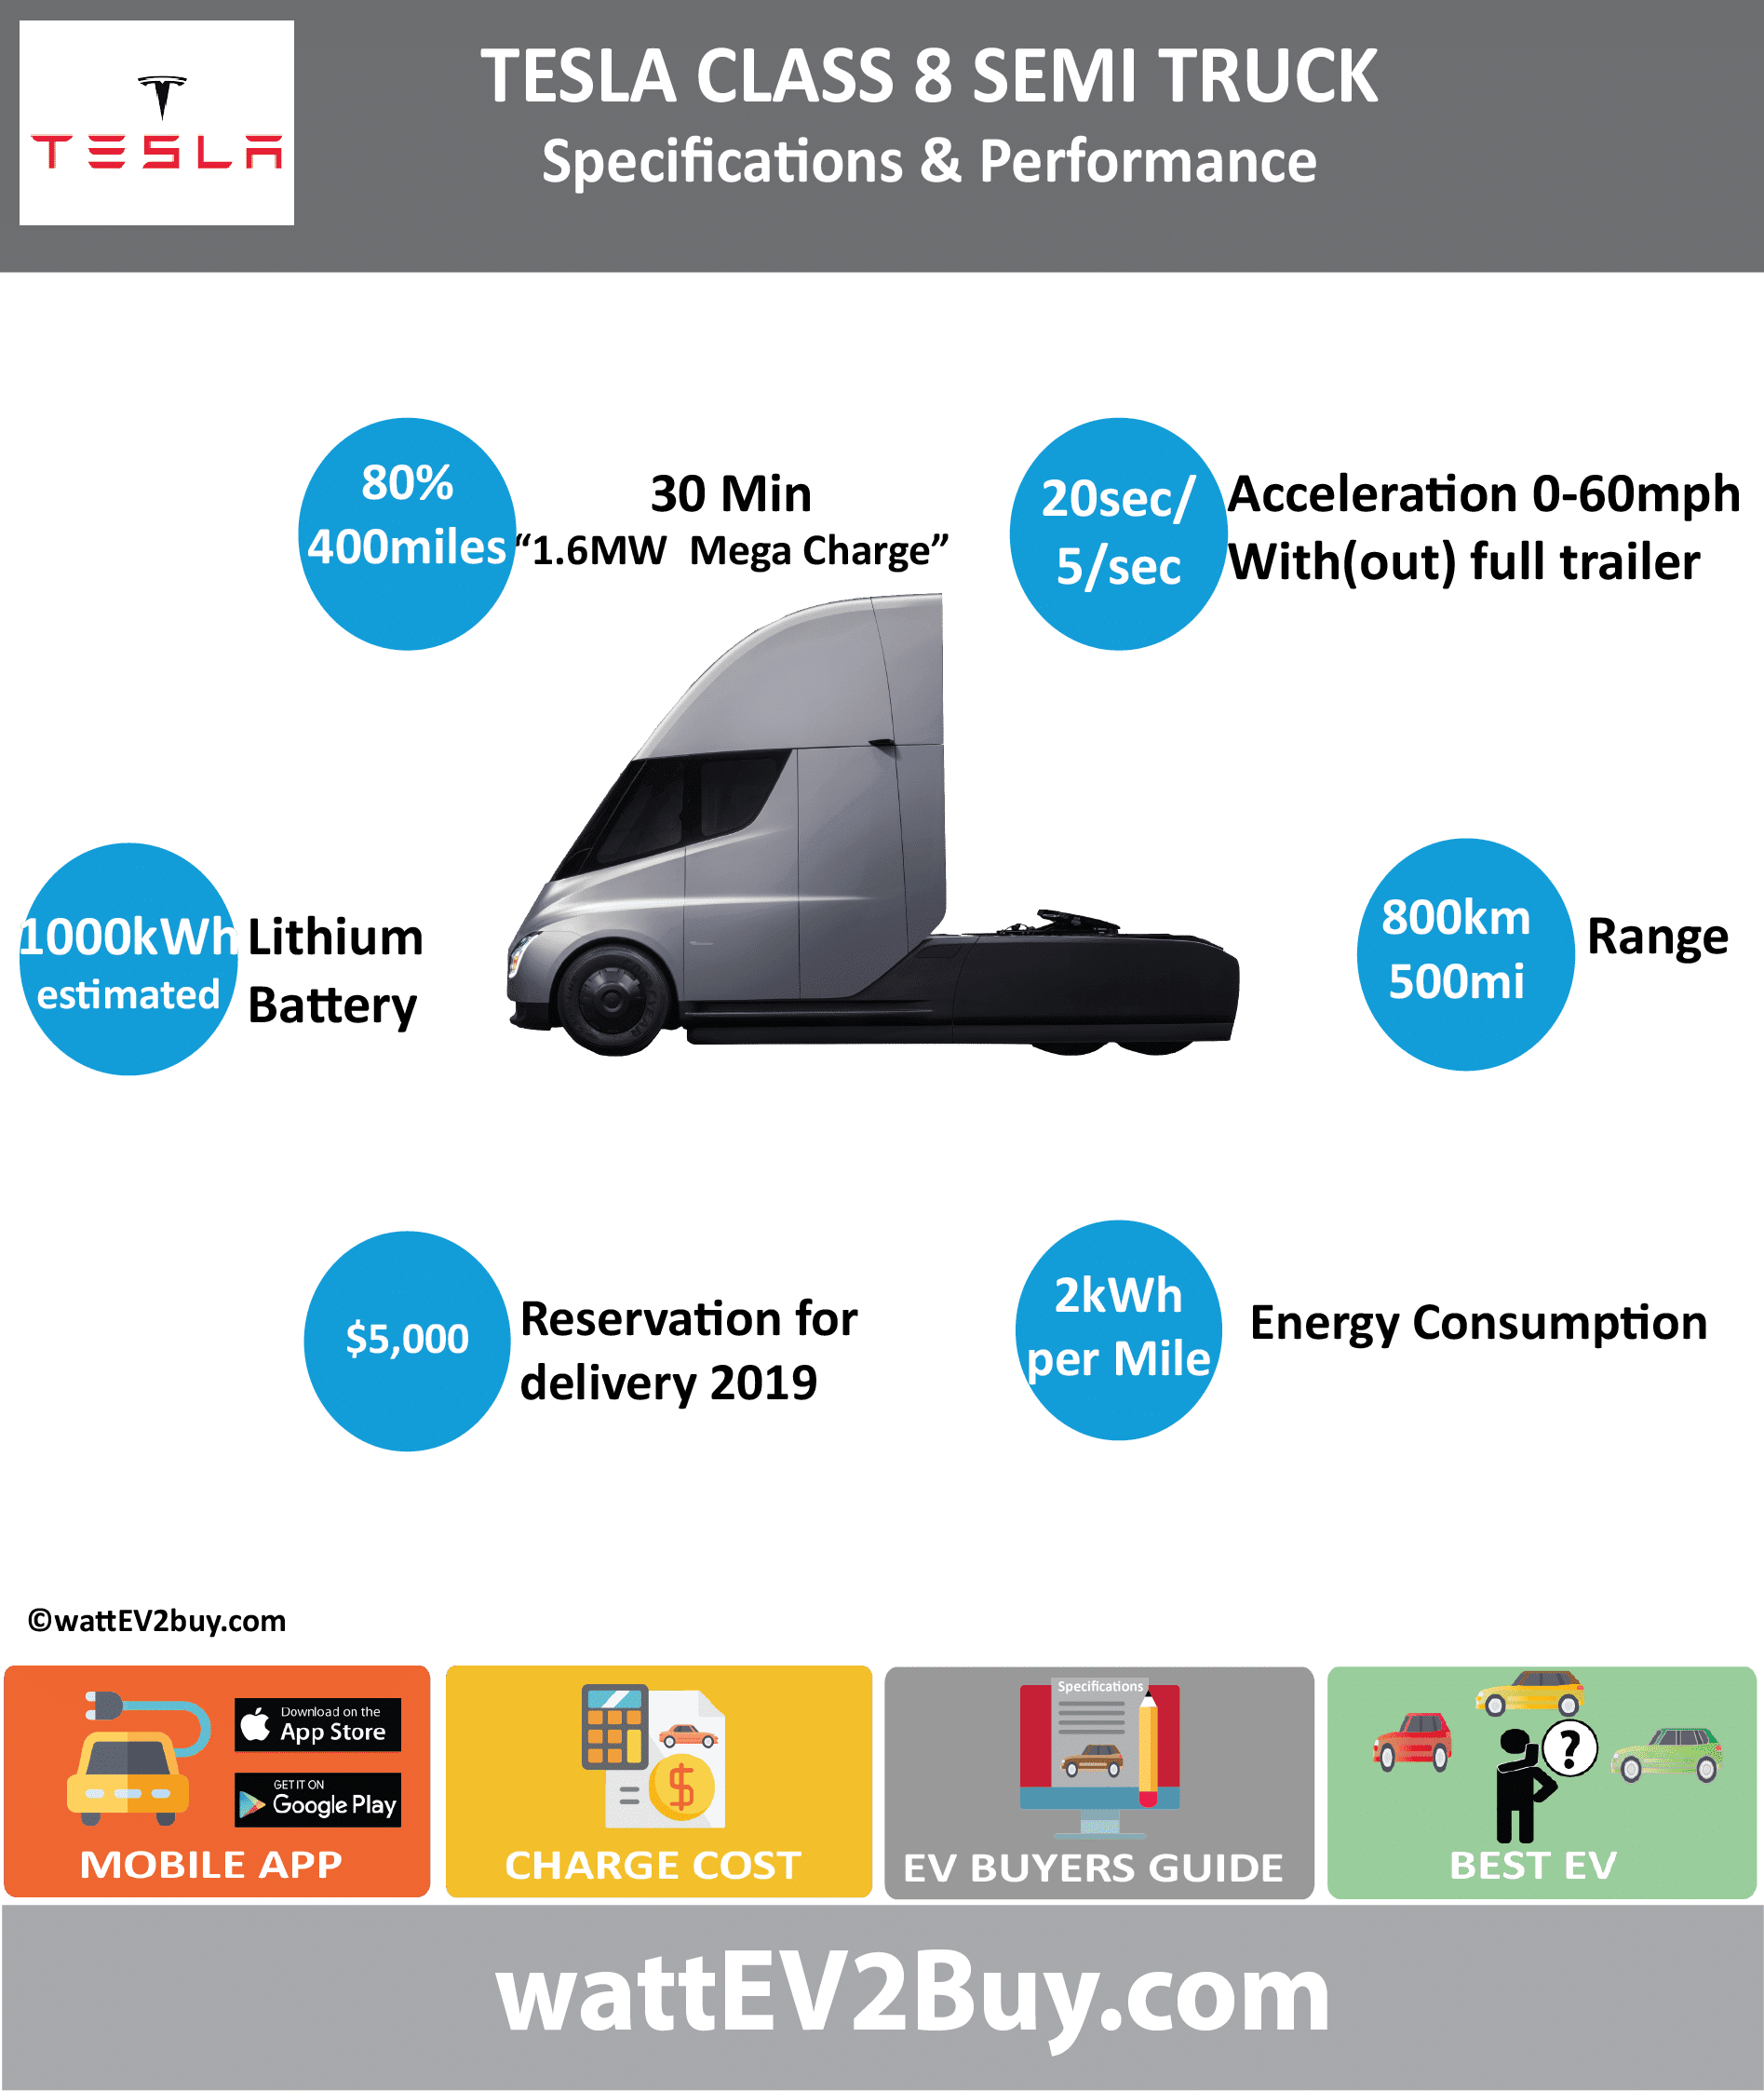 Tesla Class 8 Semi Truck Specs wattev2Buy.com 2019 Battery Chemistry Battery Capacity kWh 1000 Battery Nominal rating kWh Voltage V Amps Ah Cells Modules Efficiency Weight (kg) Cell Type SOC Cooling Cycles Battery Type Depth of Discharge (DOD) Energy Density Wh/kg Battery Manufacturer Battery Warranty - years Battery Warranty - km Battery Warranty - miles Battery Electric Range - at constant 38mph Battery Electric Range - at constant 60km/h Battery Electric Range - NEDC Mi Battery Electric Range - NEDC km Battery Electric Range - CCM Mi Battery Electric Range - CCM km Battery Electric Range - EPA Mi 500 Battery Electric Range - EPA km 800 Electric Top Speed - mph 65 Electric Top Speed - km/h Acceleration 0 - 100km/h sec Acceleration 0 - 50km/h sec Acceleration 0 - 62mph sec Acceleration 0 - 60mph sec 5 Acceleration 0 - 37.2mph sec Wireless Charging Direct Current Fast Charge kW Charger Efficiency Onboard Charger kW Onboard Charger Optional kW Charging Cord - amps Charging Cord - volts LV 1 Charge kW LV 1 Charge Time (Hours) LV 2 Charge kW LV 2 Charge Time (Hours) LV 3 CCS/Combo kW LV 3 Charge Time (min to 70%) LV 3 Charge Time (min to 80%) 30 LV 3 Charge Time (mi) 400 LV 3 Charge Time (km) 640 Supercharger Charging System kW Charger Output Charge Connector Power Outlet kW Power Outlet Amps MPGe Combined - miles MPGe Combined - km MPGe City - miles MPGe City - km MPGe Highway - miles MPGe Highway - km Max Power - hp (Electric Max) Max Power - kW (Electric Max) Max Torque - lb.ft (Electric Max) Max Torque - N.m (Electric Max) Drivetrain Generator Motor Type Electric Motor Manufacturer Electric Motor Output kW Electric Motor Output hp Transmission Electric Motor - Rear Max Power - hp (Rear) Max Power - kW (Rear) Max Torque - lb.ft (Rear) Max Torque - N.m (Rear) Electric Motor - Front Max Power - hp (Front) Max Power - kW (Front) Max Torque - lb.ft (Front) Max Torque - N.m (Front) Energy Consumption kWh/100km Energy Consumption kWh/100miles 200 Deposit GB Battery Lease 